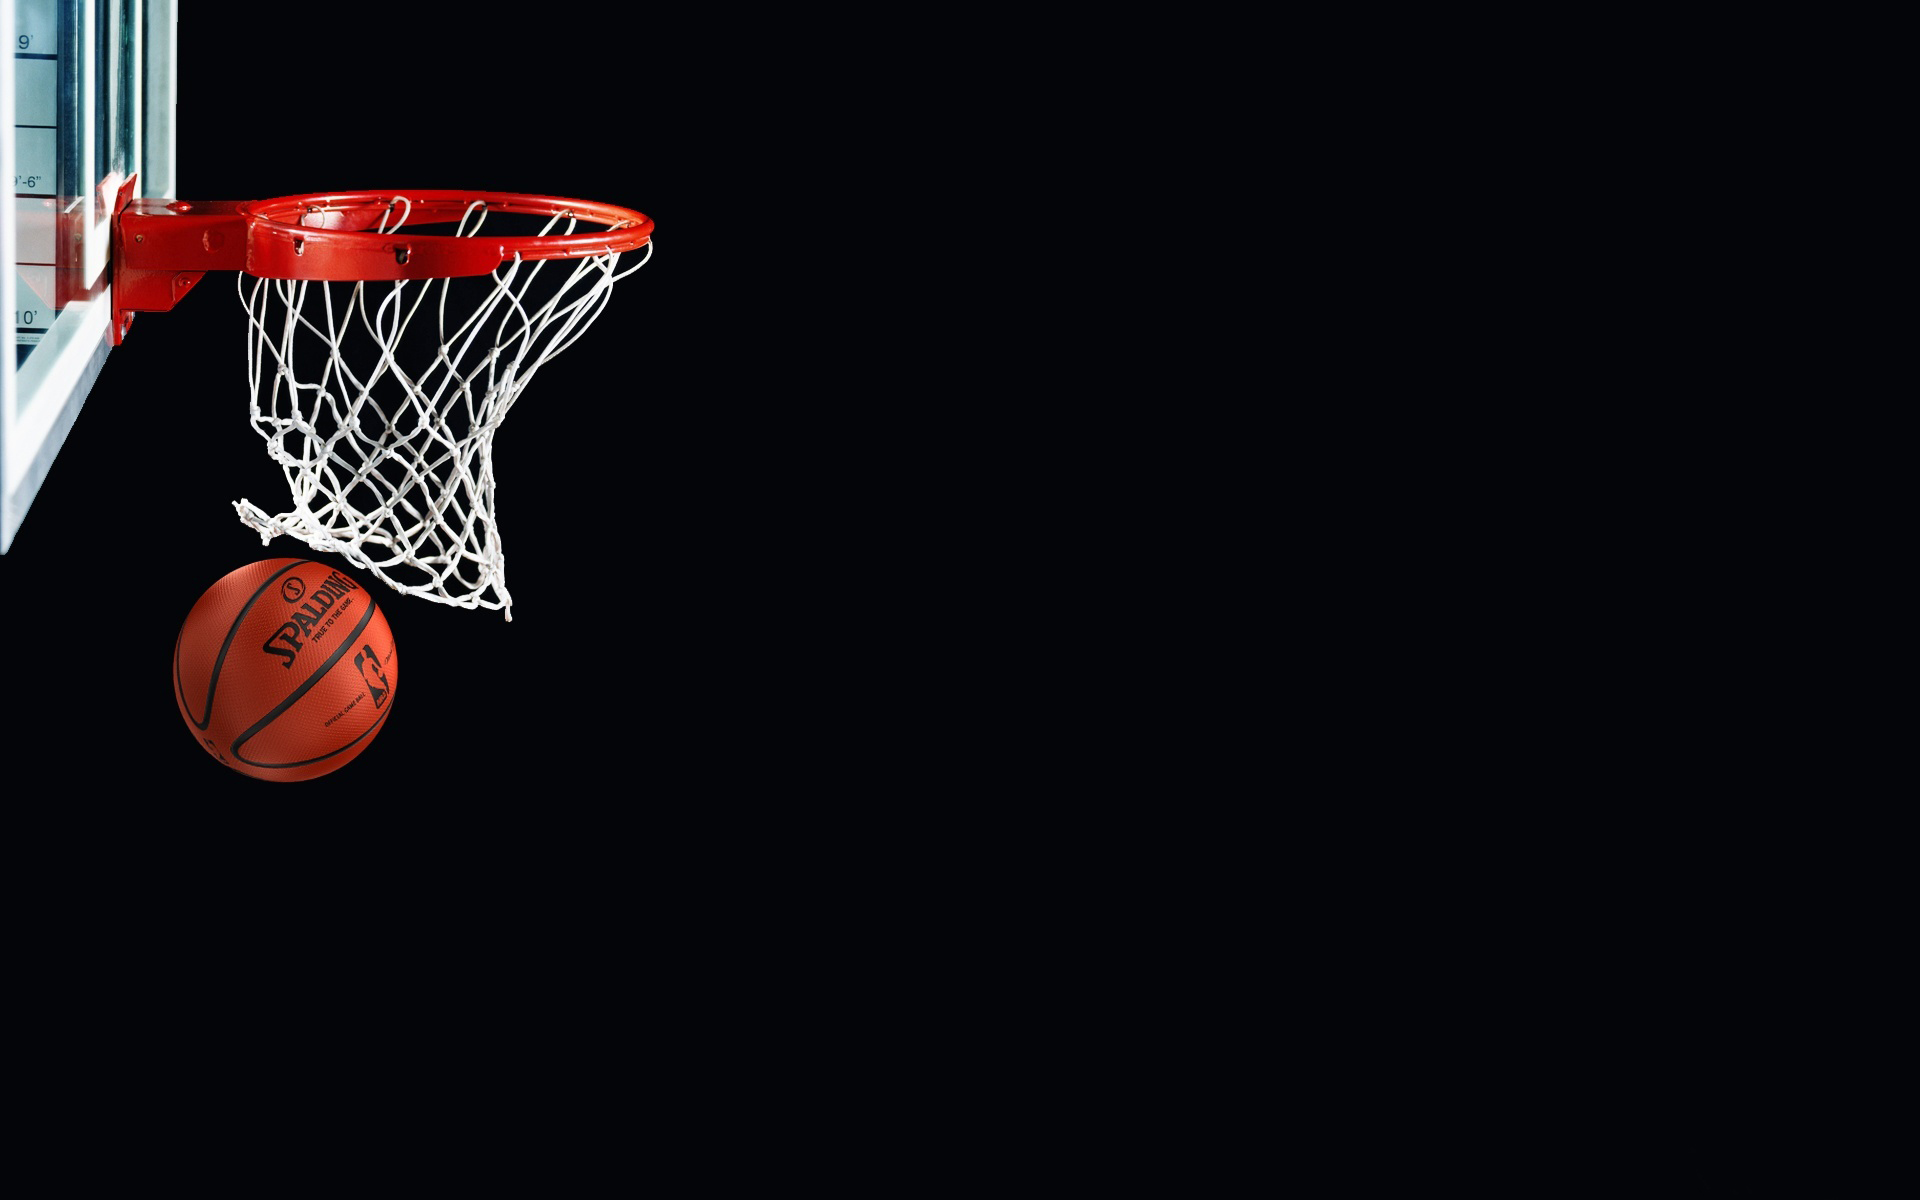 Islamic Wallpaper Hd 3d Basketball Background 5546 Hdwpro